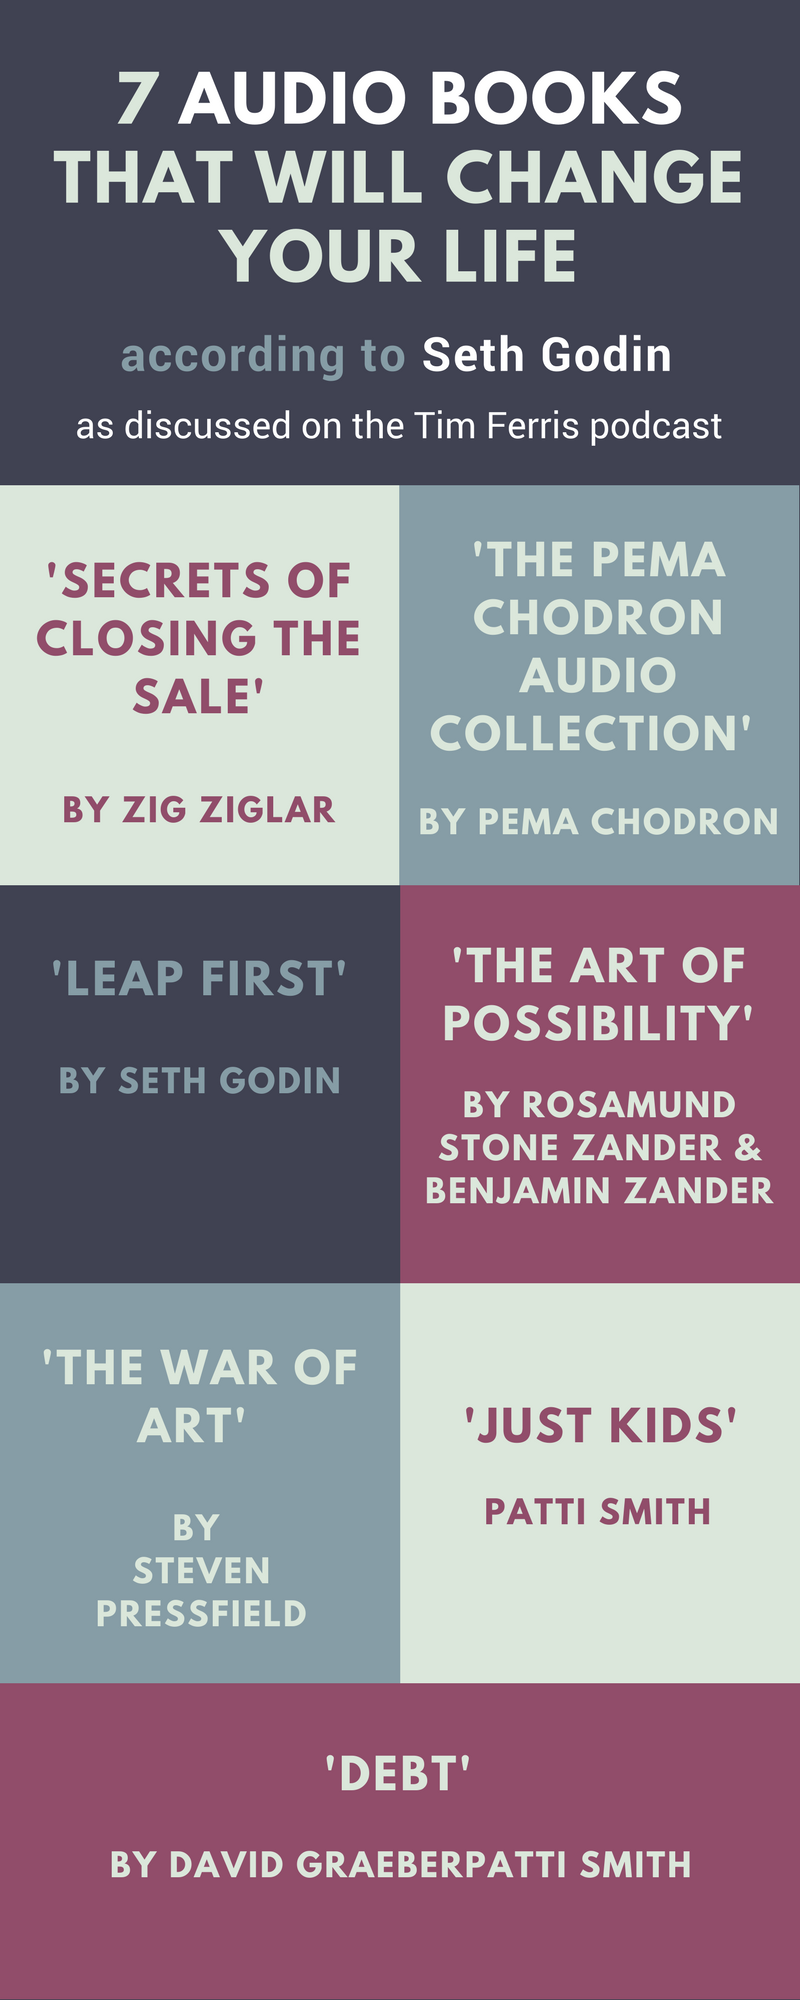 Ever wonder, what does Seth Godin read? Us too. Check out this article on Seth Godins Audio Books That Will Change Your Life. The article includes a link to the Tim Ferris podcast where Seth Godins book choices are further discussed.